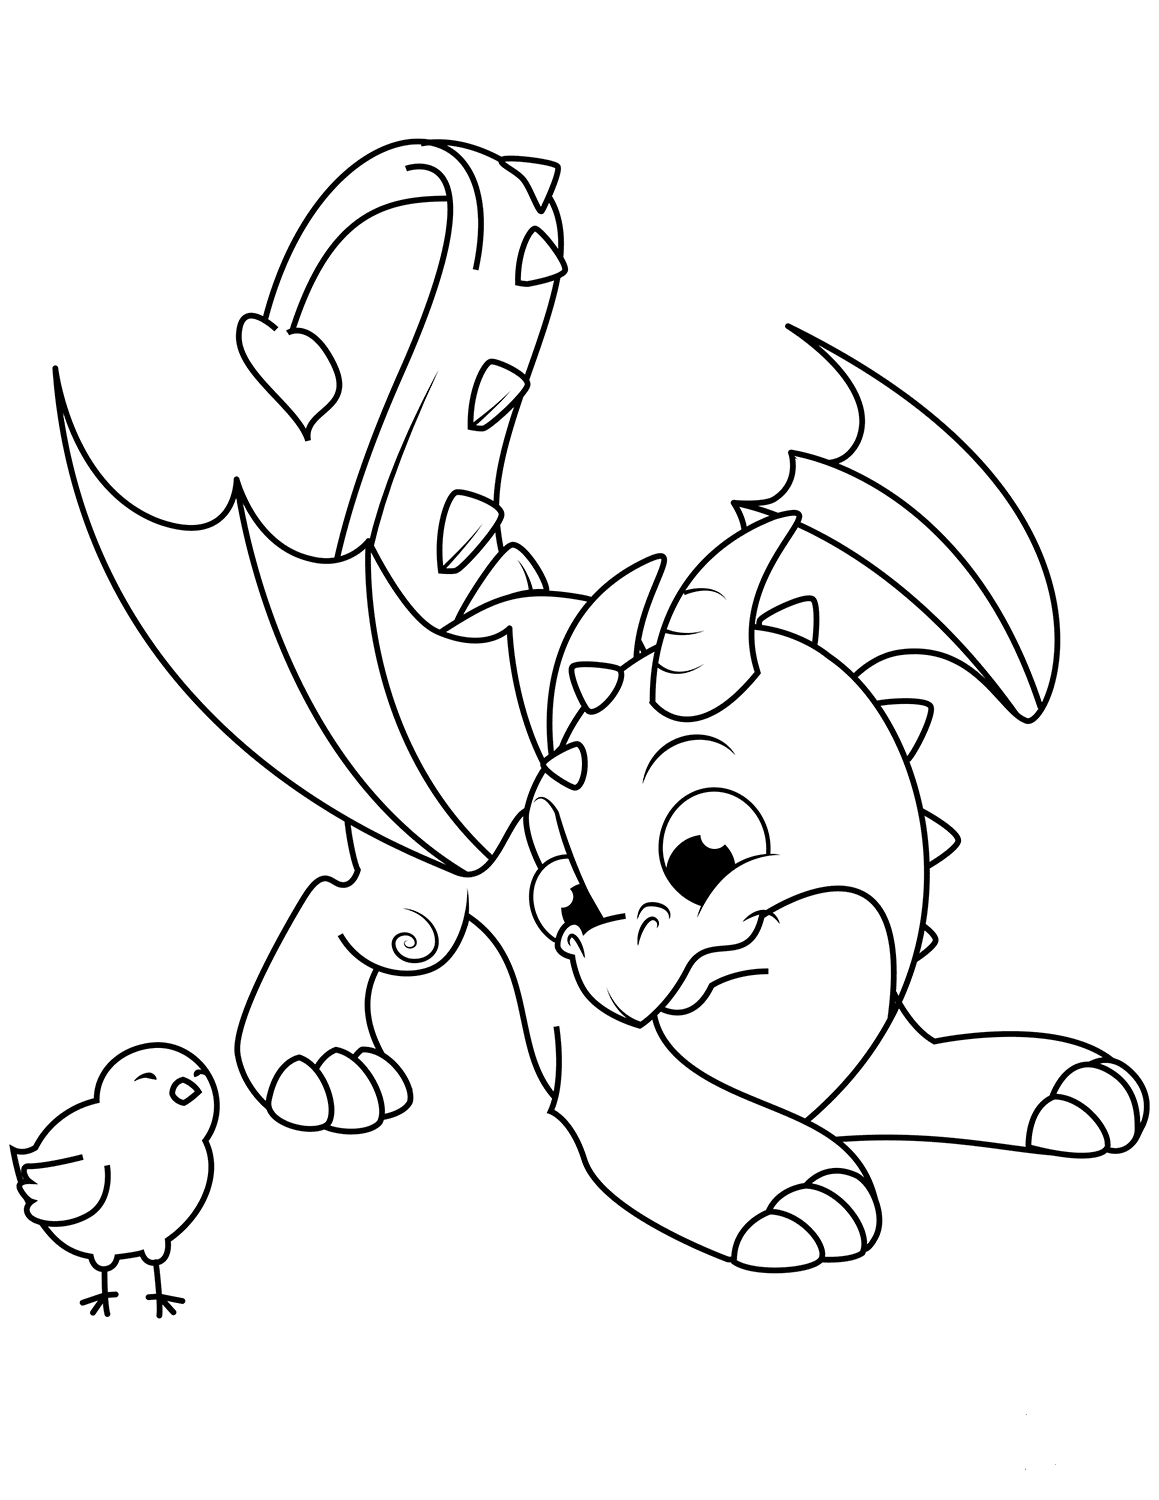 Dragon And Bird Coloring Page